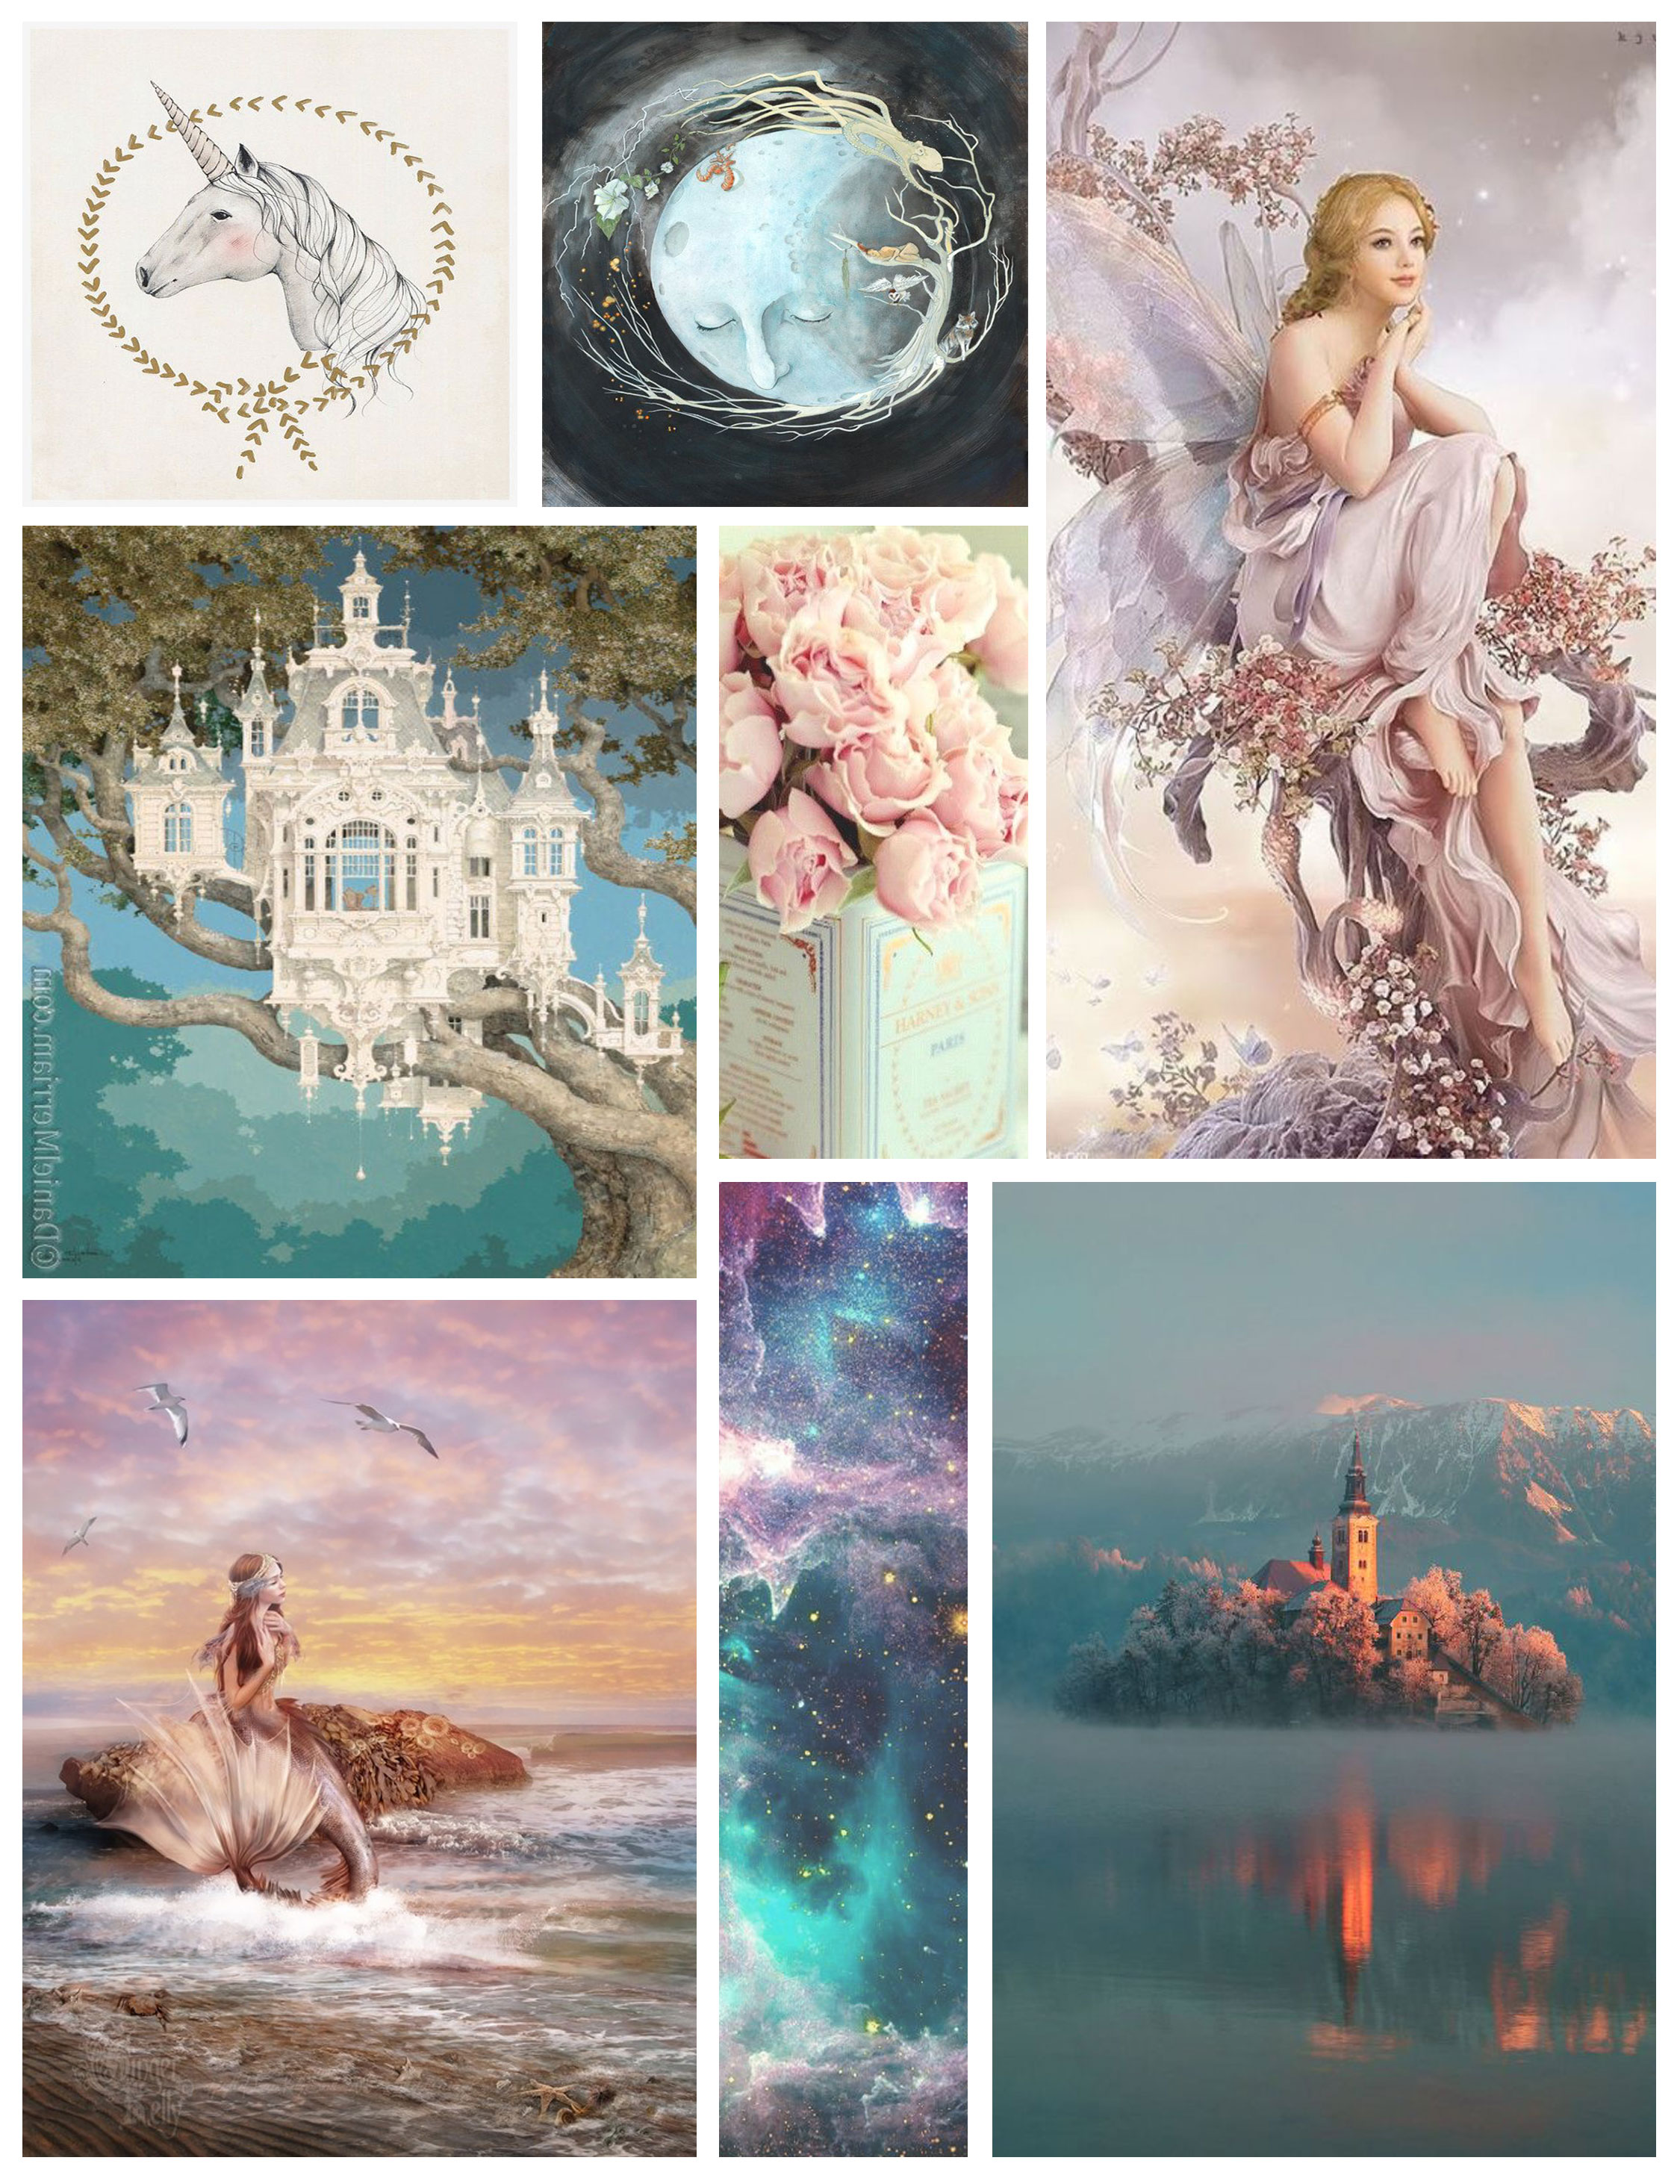 7 Best Images of Tumblr Collage Printable - Inspired ...